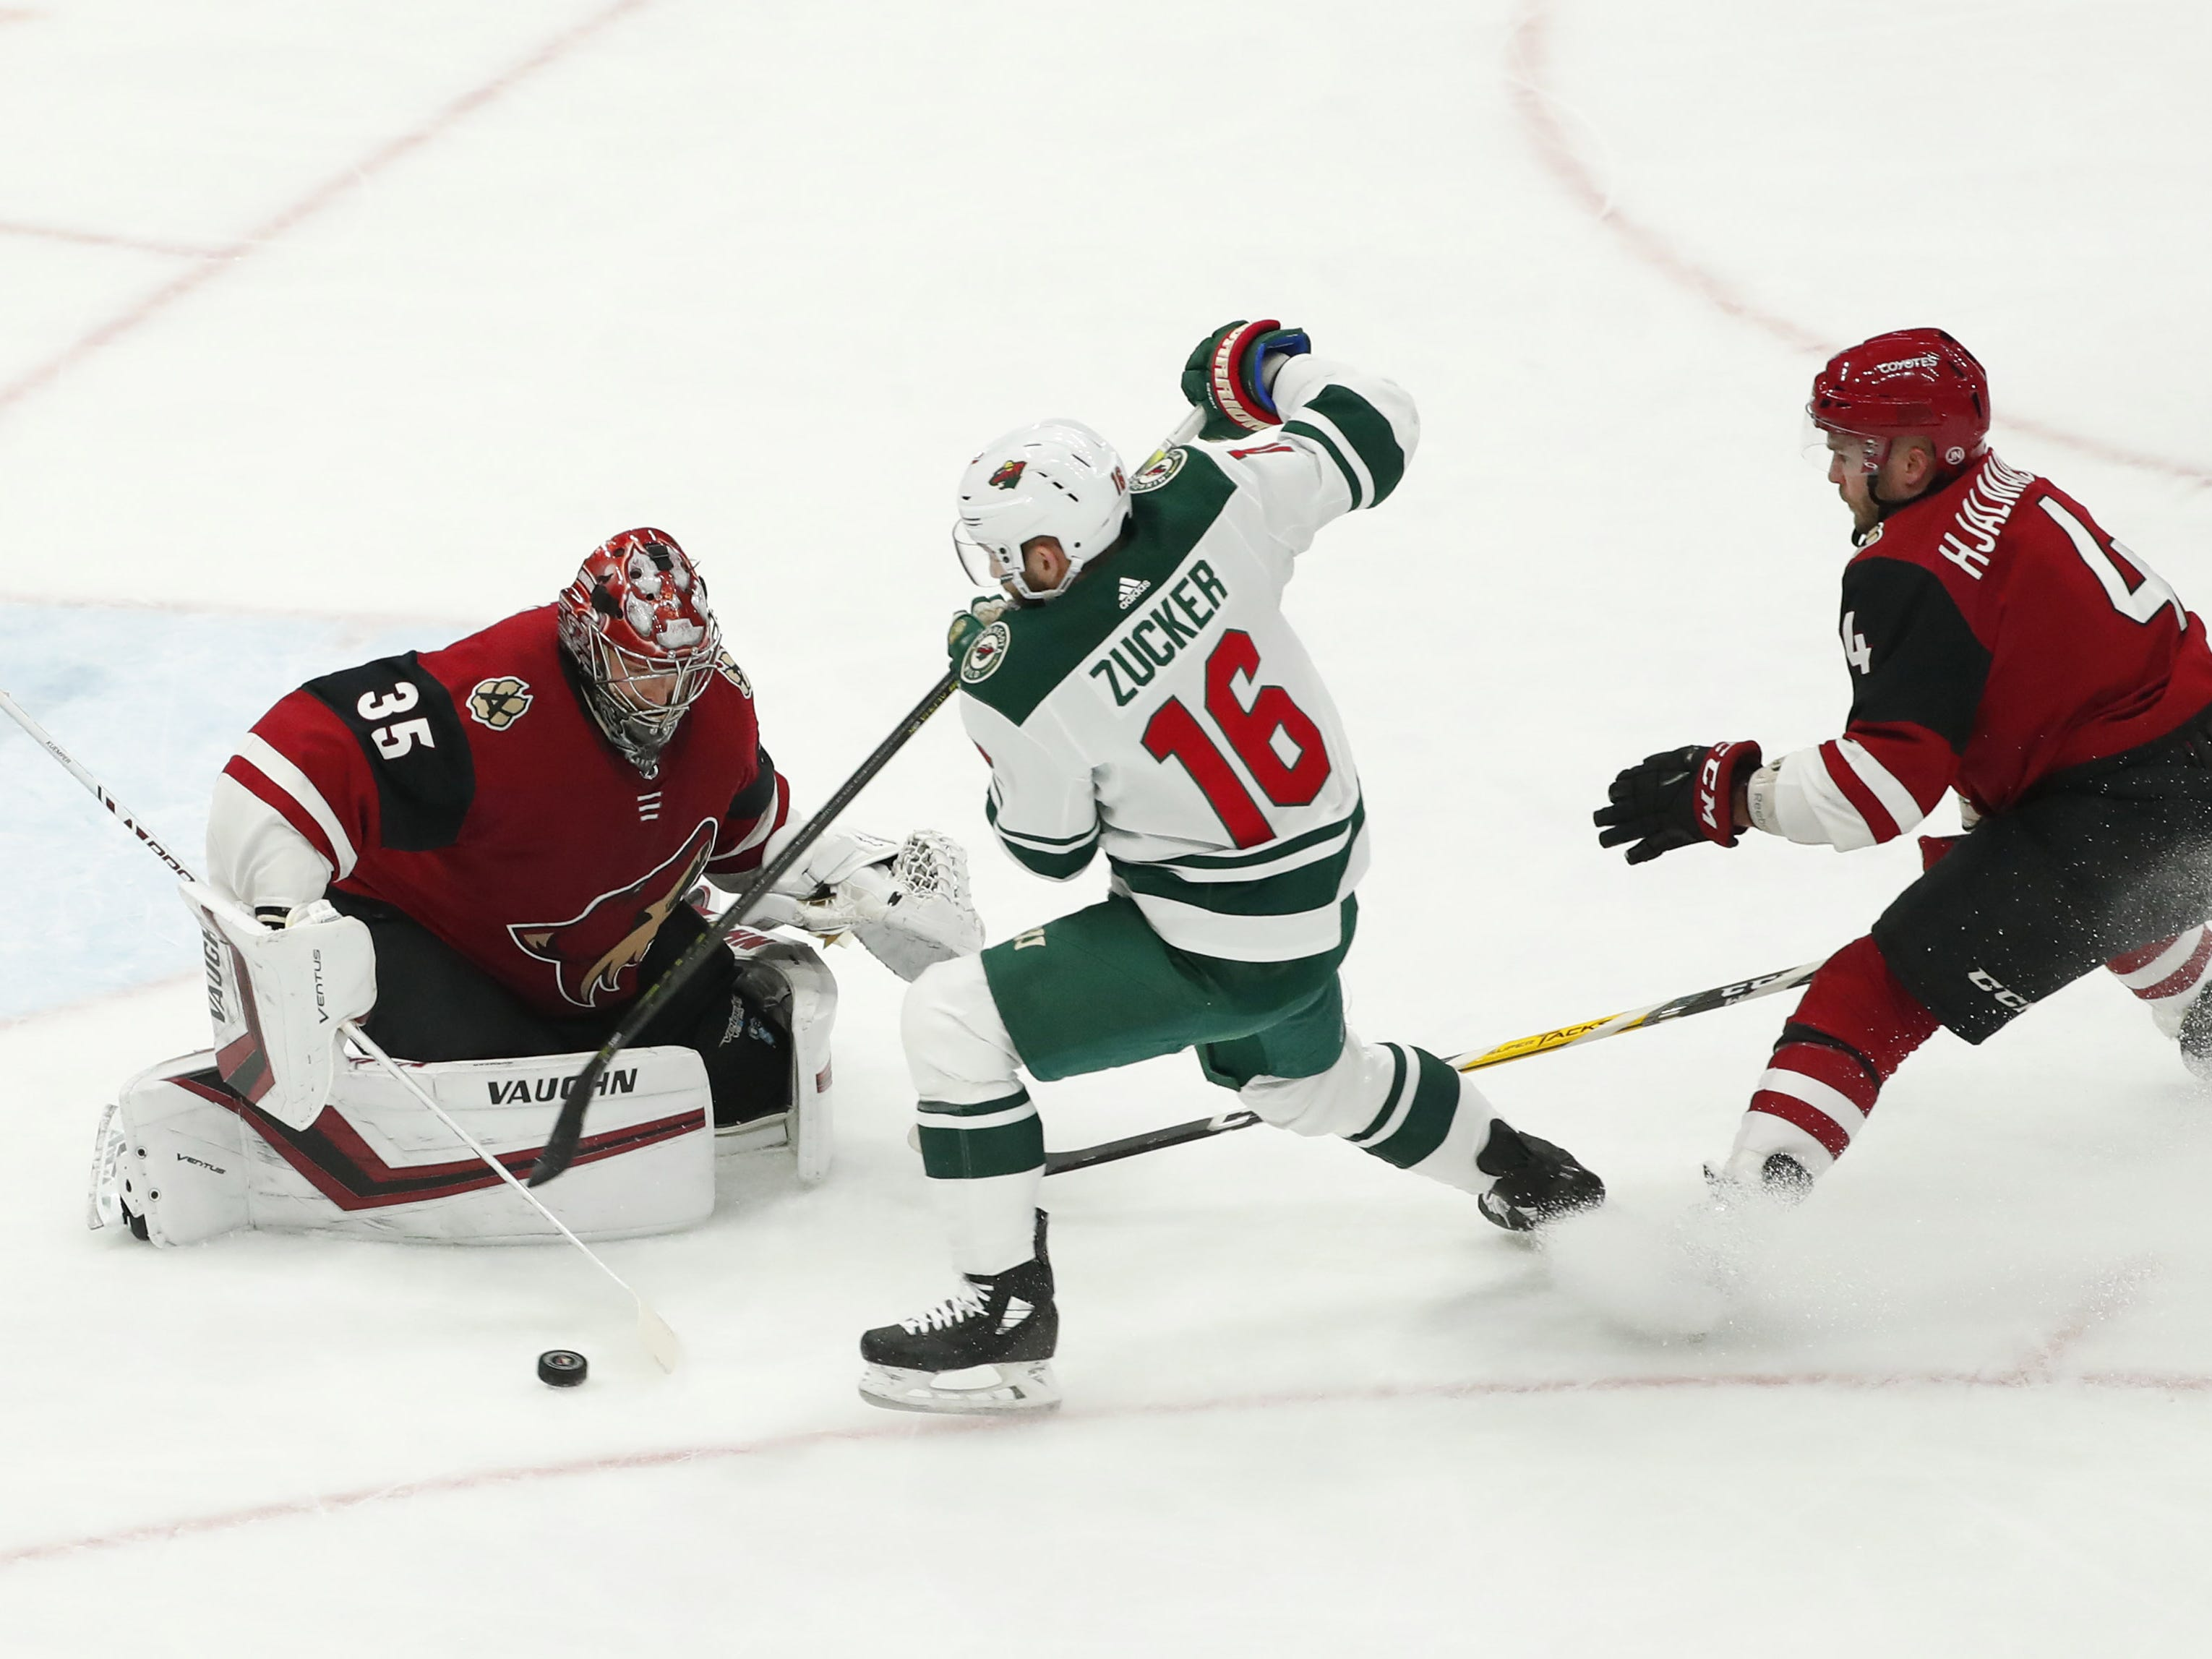 Arizona Coyotes goaltender Darcy Kuemper (35) blocks a shot by Minnesota Wild left wing Jason Zucker (16) as defenseman Niklas Hjalmarsson (4) defends during the first period in Glendale March 31, 2019. Hjalmarsson was called for slashing.